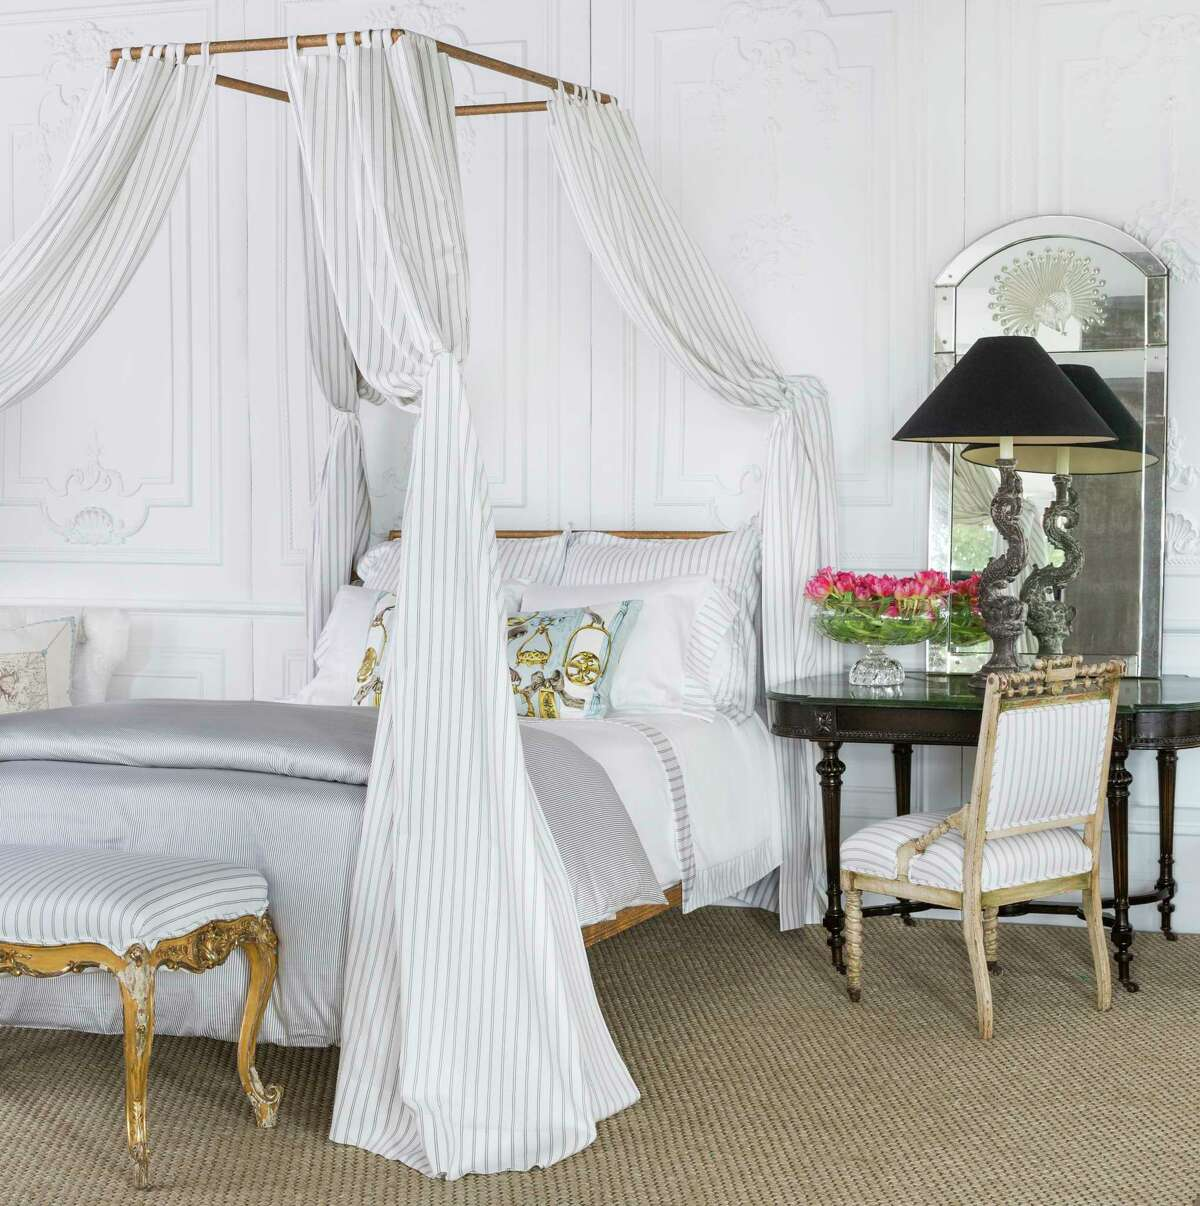 Karen Pulaski's Tribute Goods, 3637 W. Alabama, sells artful luxury bedding that's made in Italy. $150 and up